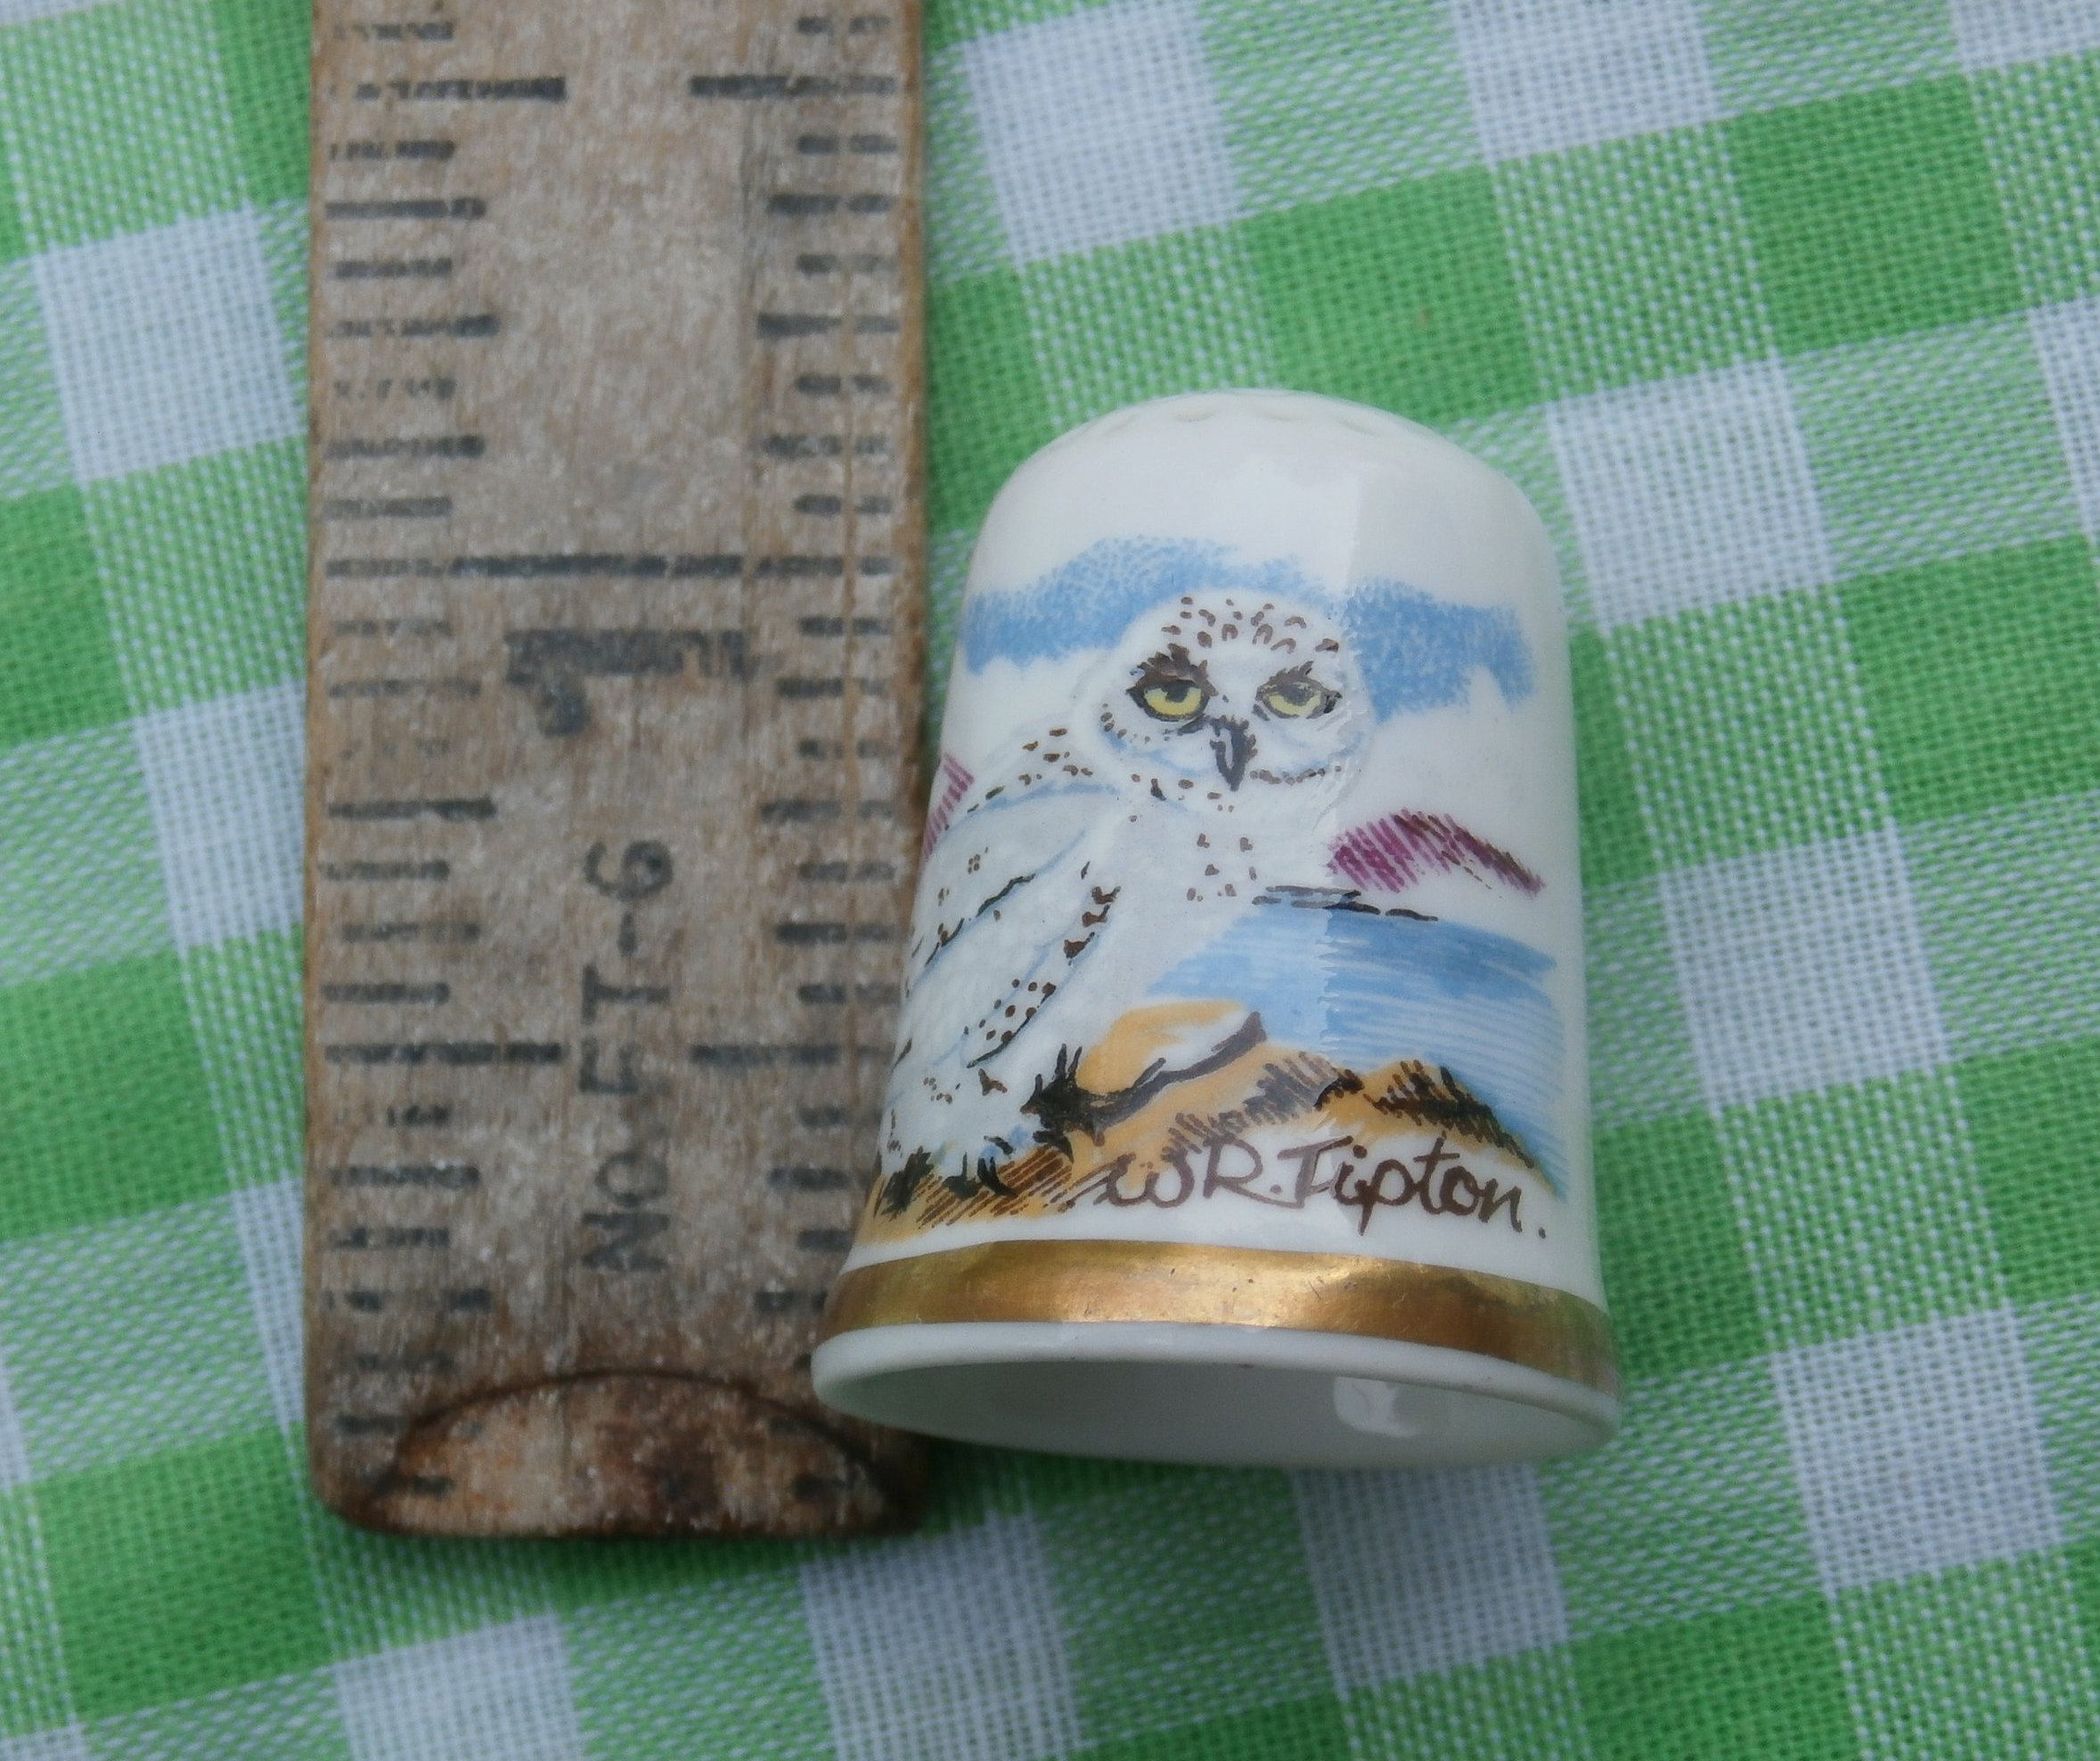 2fa5922f01bc0 Snowy Owl Thimble W.R. Tipton Caverswall Made in England Vintage English  China Collectible Bird Theme